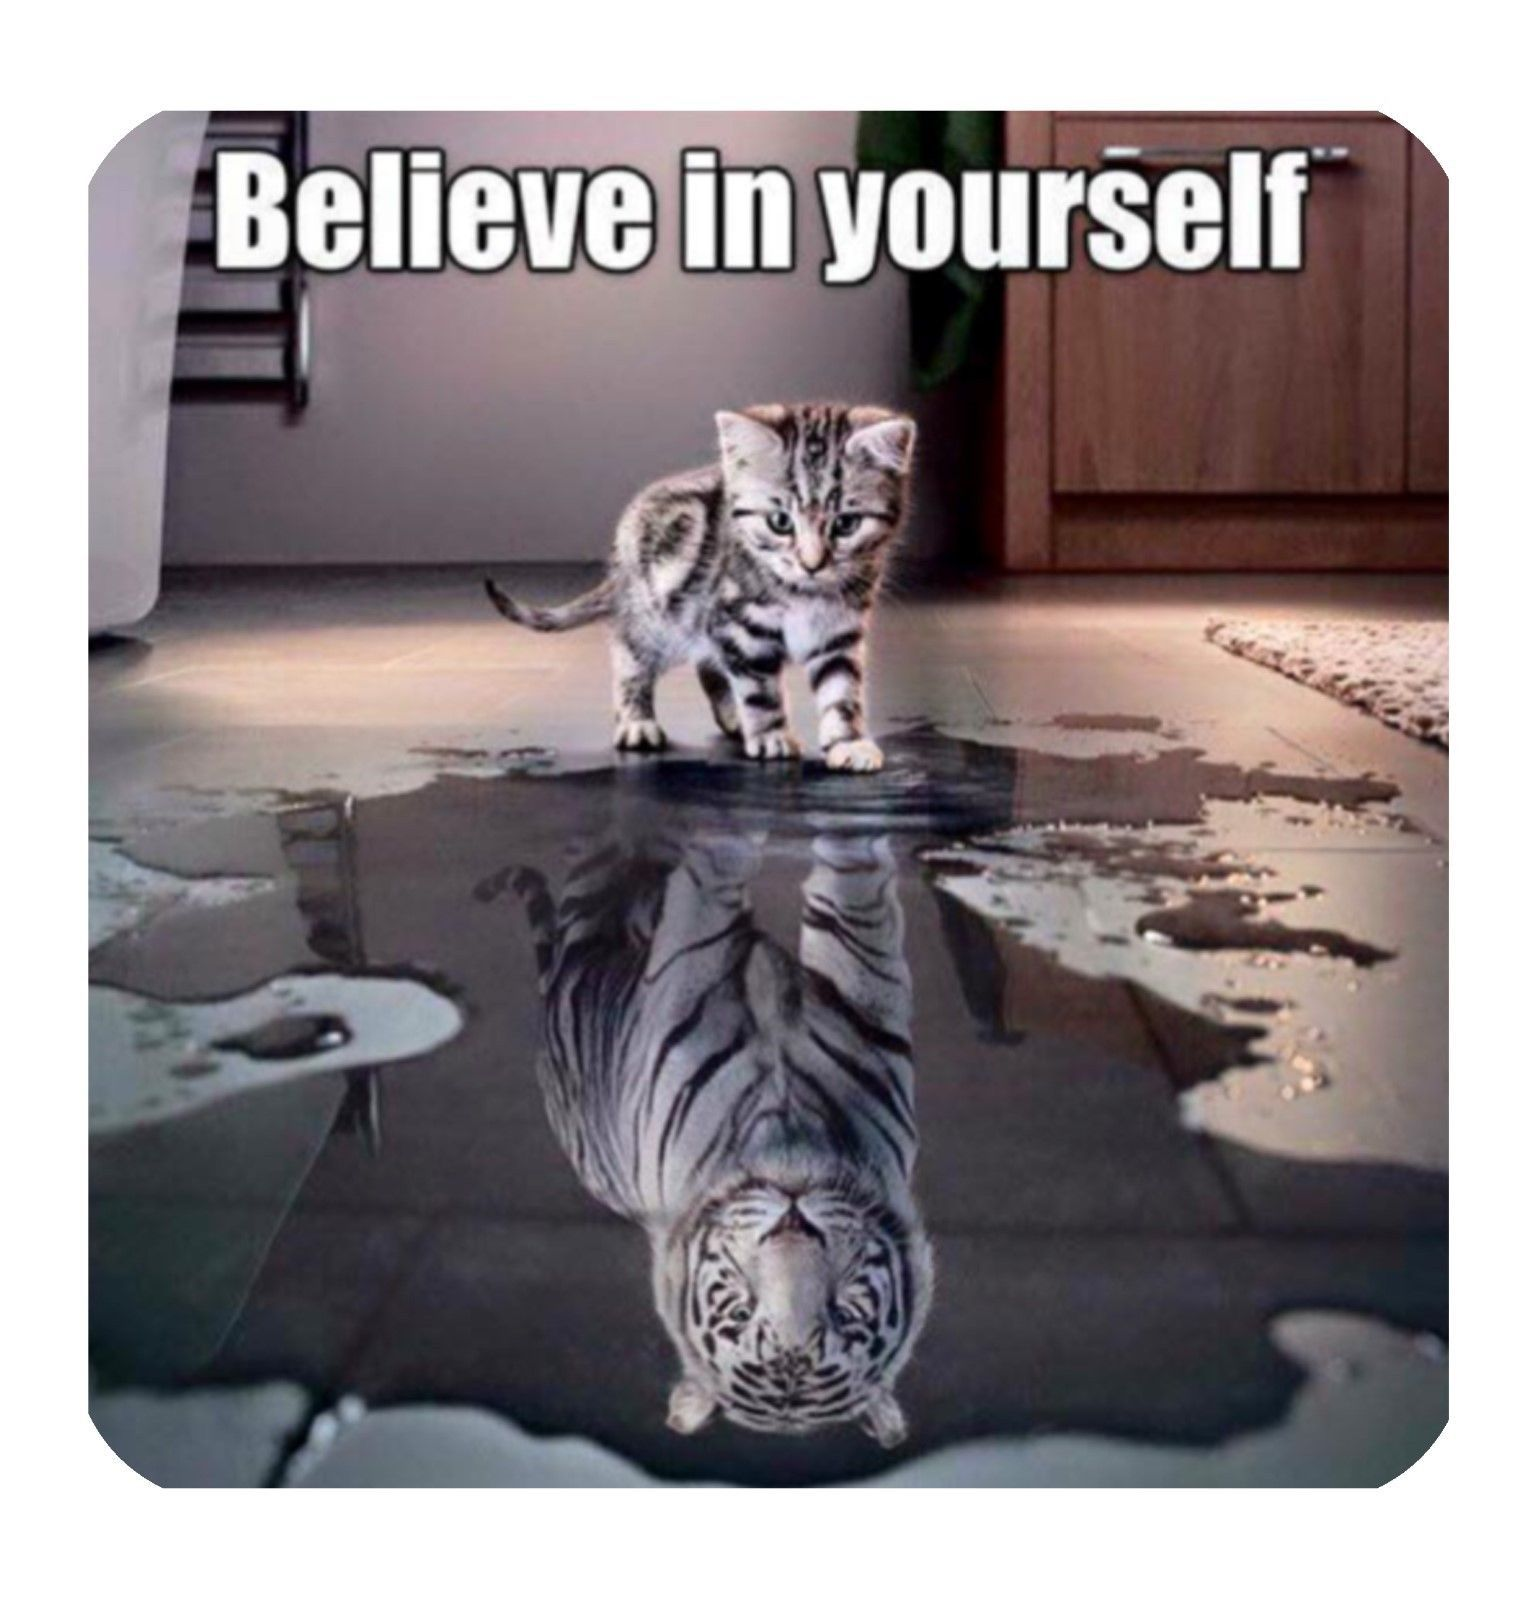 Coaster Cup Lesson Look Believe Yourself Reflect Puddle